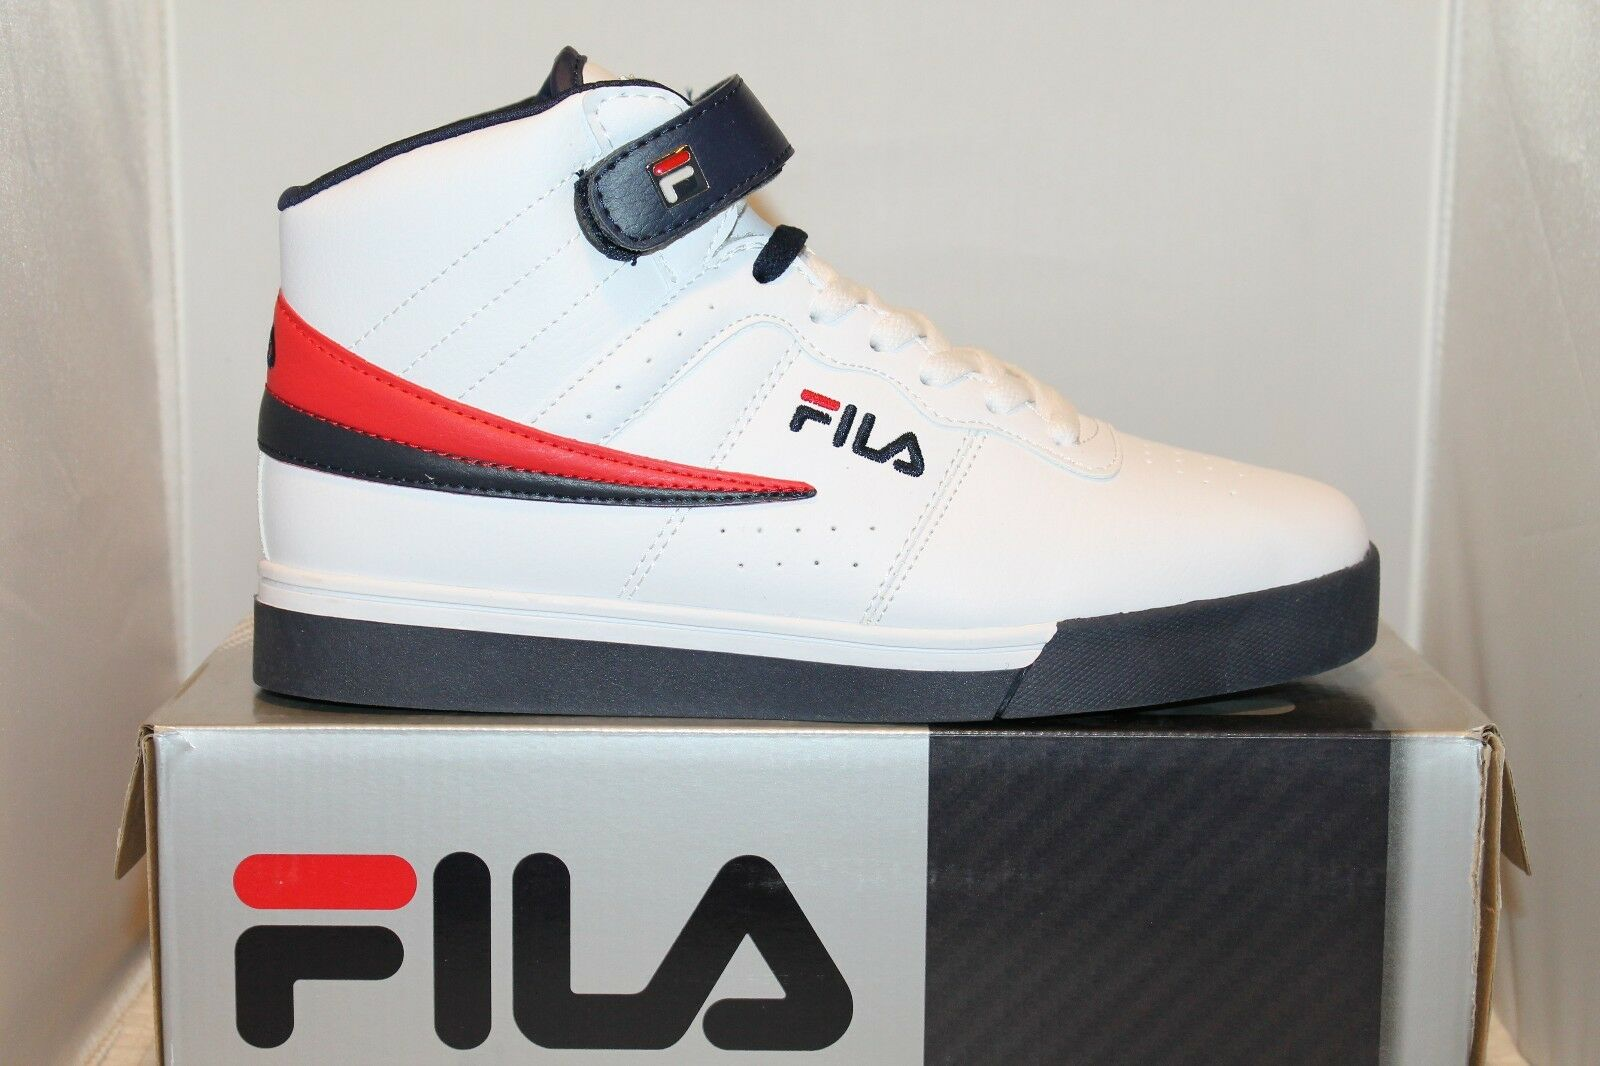 d4f18078fddd Mens FILA Vulc 13 Mid Plus Leather High Top Size 11 for sale online ...